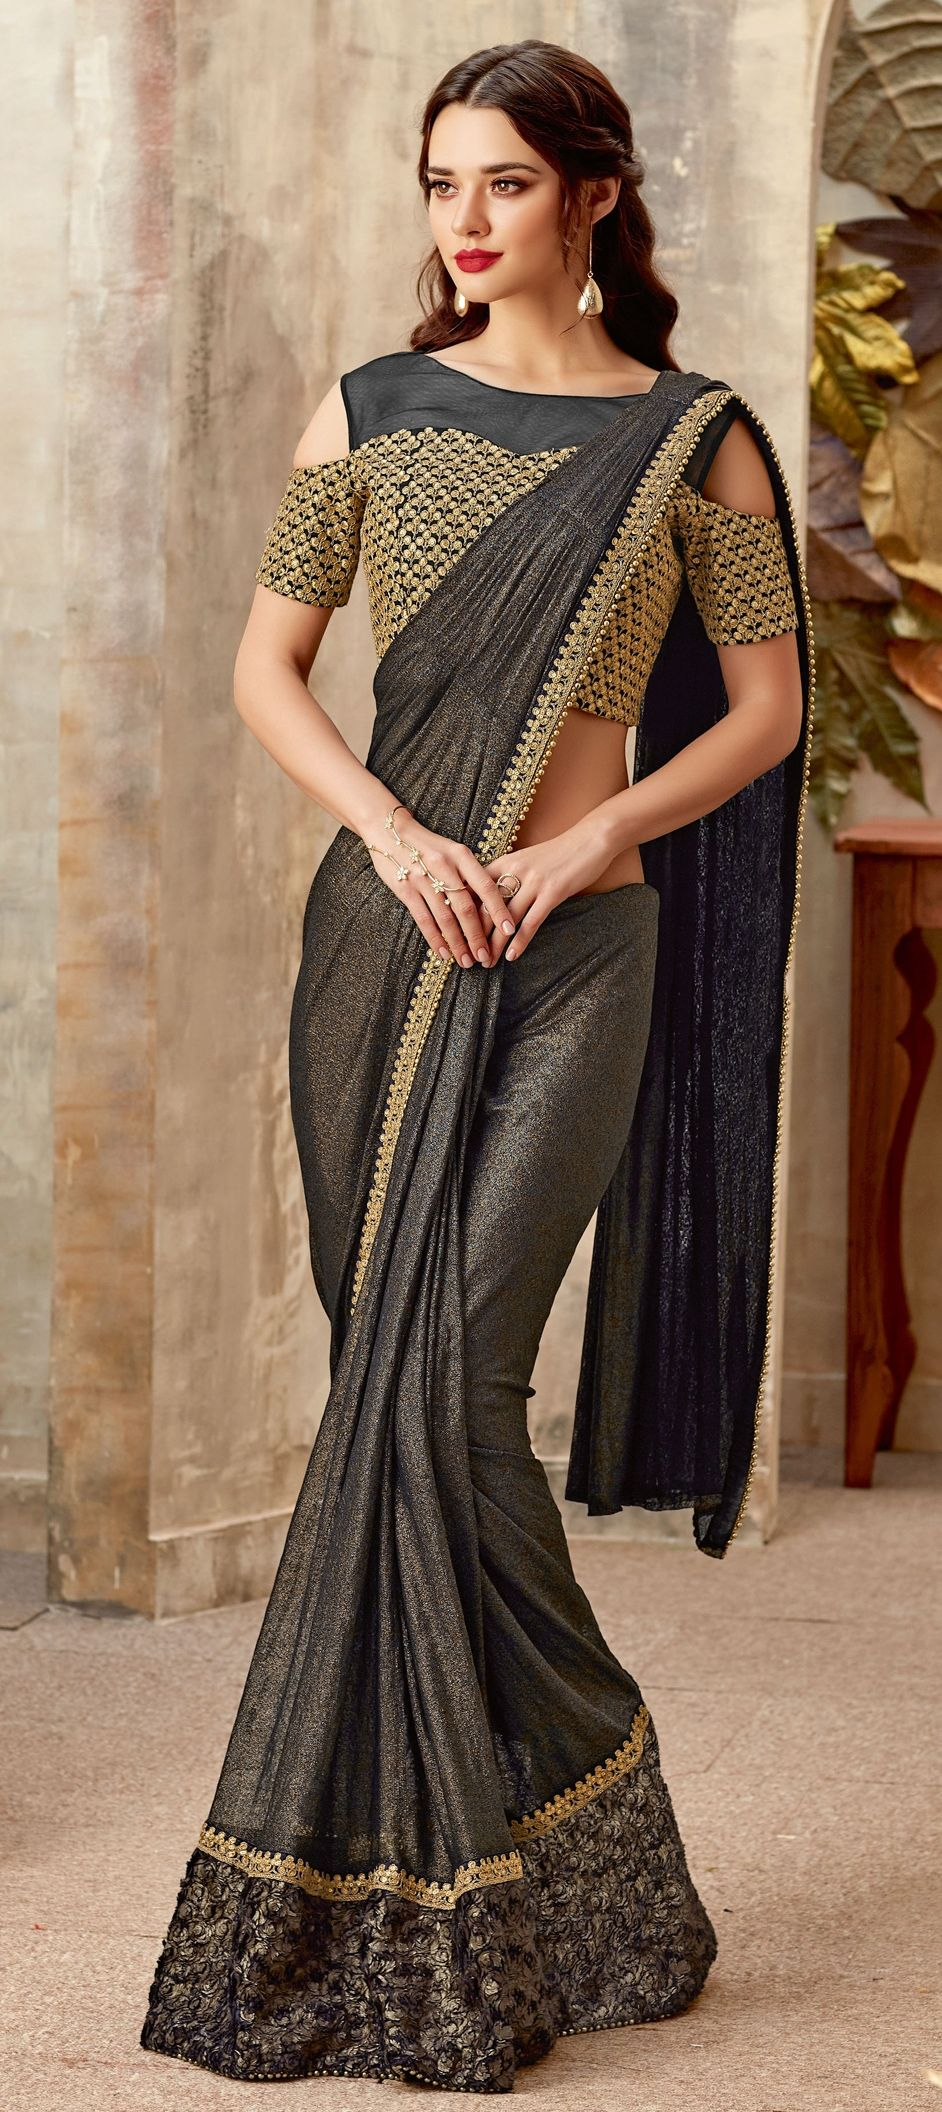 Lycra Engagement Readymade Saree In Black And Grey With Sequence Work